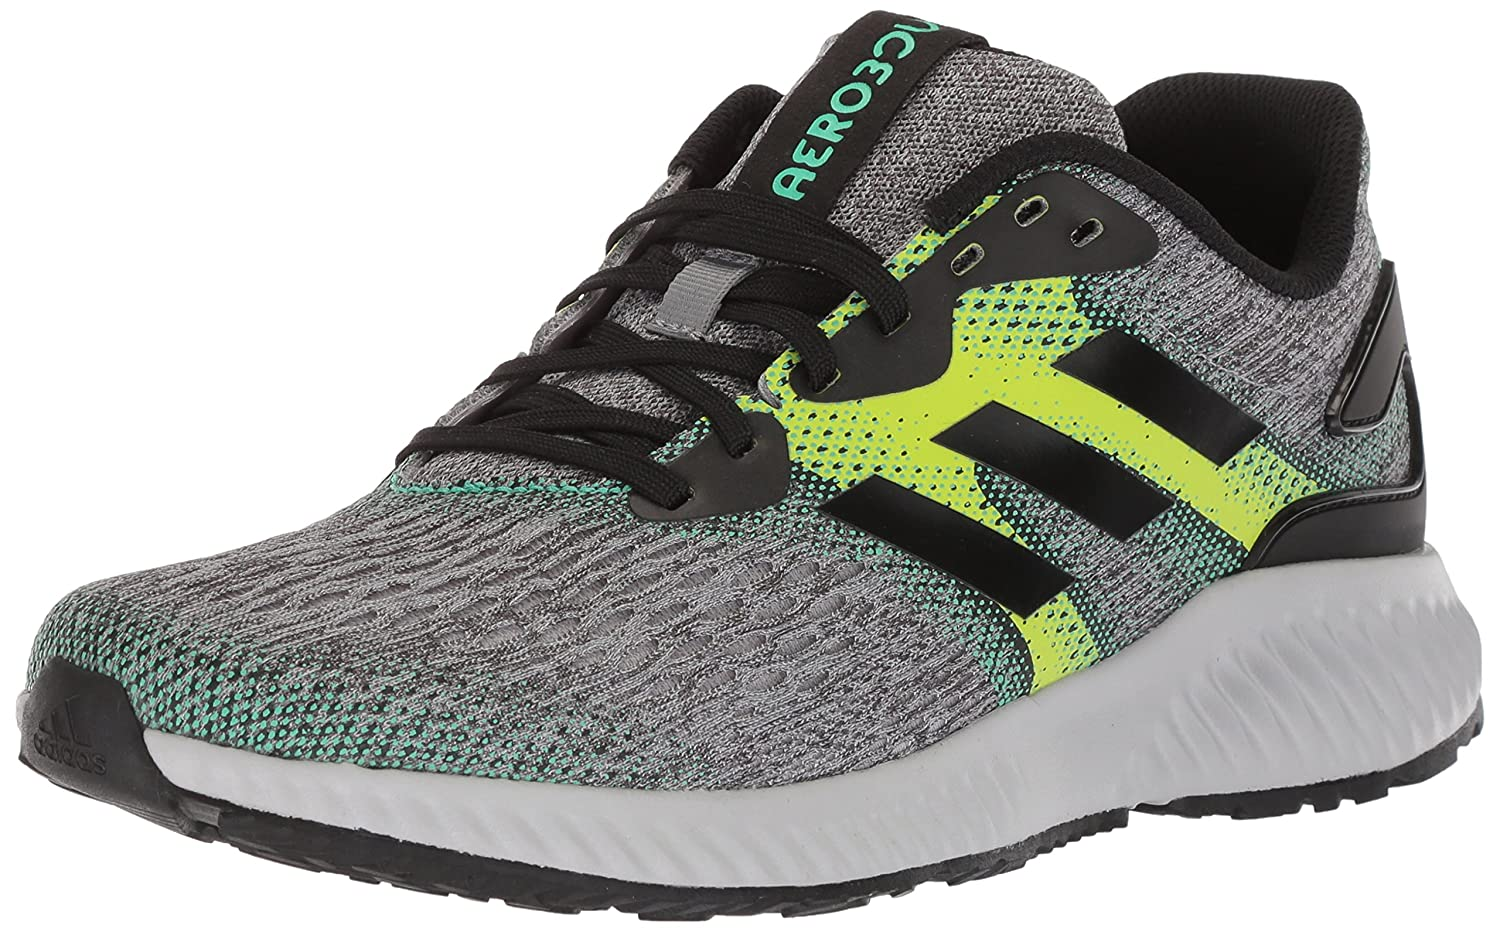 adidas Men's Aerobounce m Running Shoe B071HVRTKG 11.5 D(M) US|Core Black/Slime/Hi-res Green